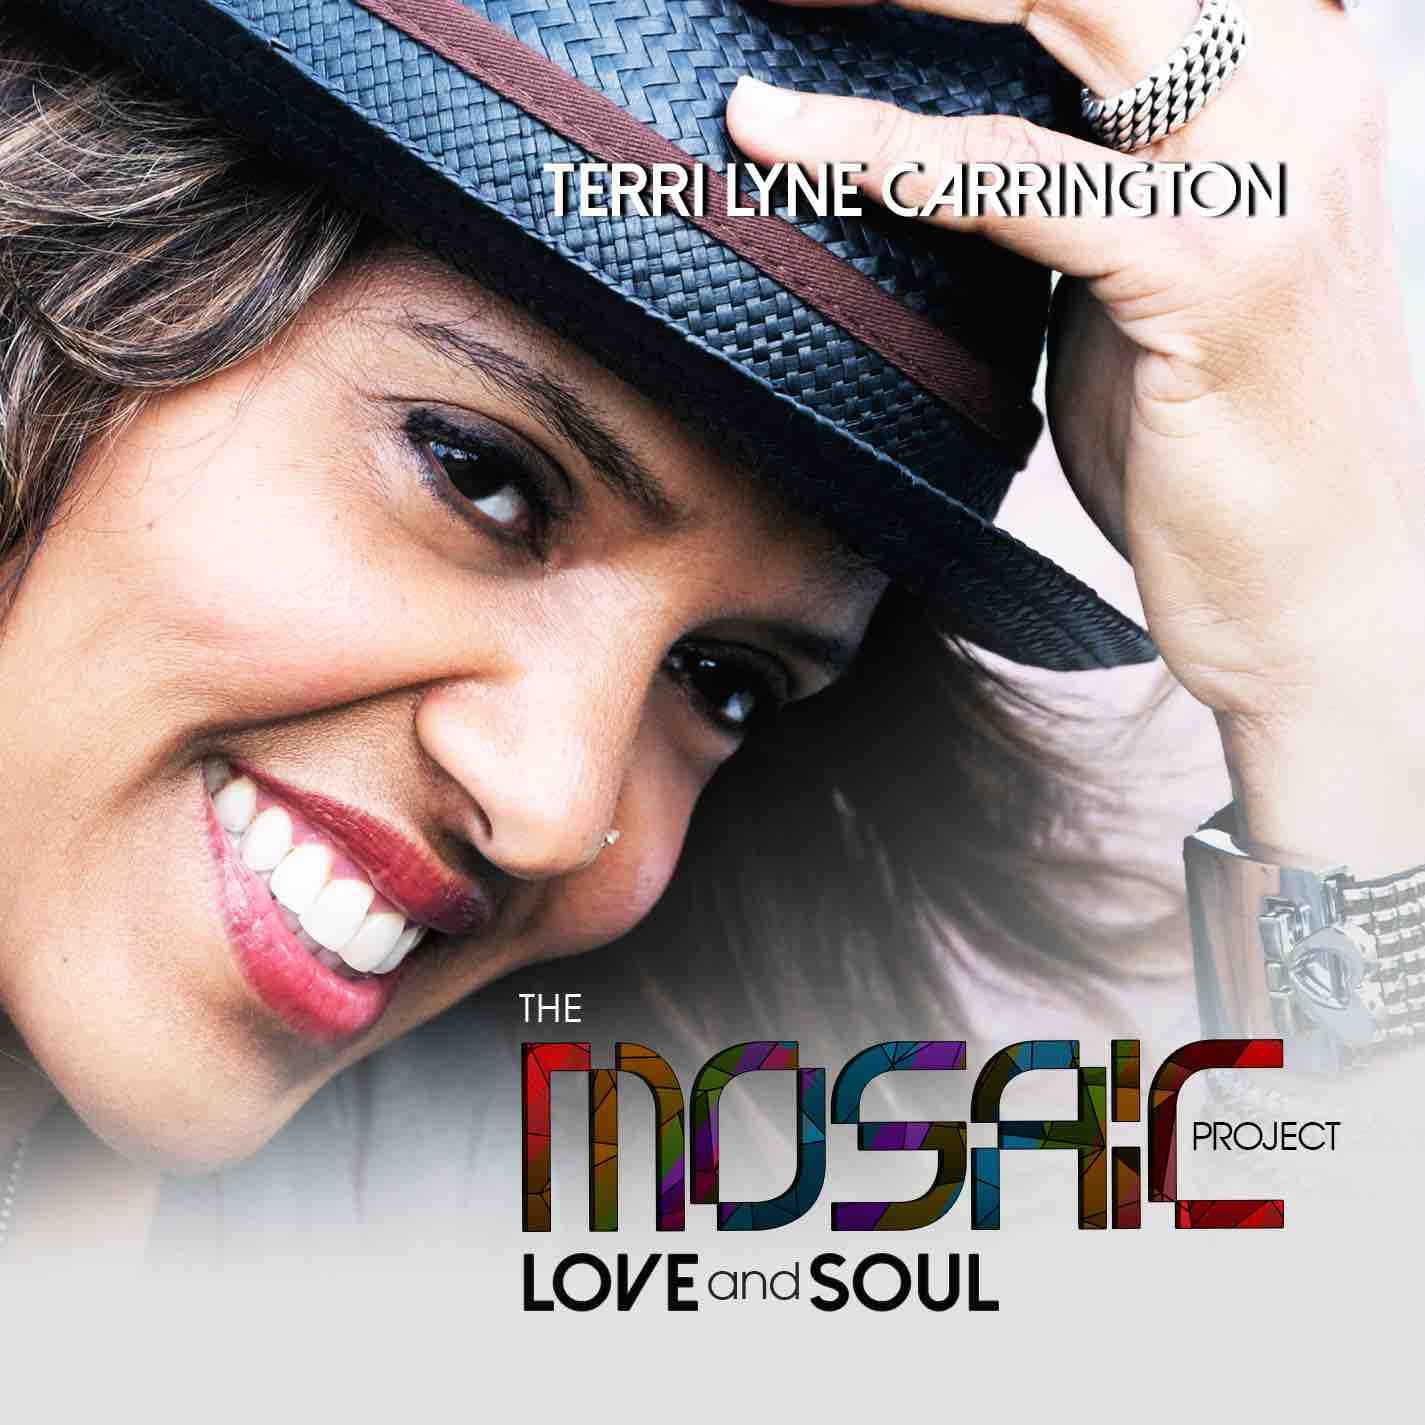 Terri Lyne Carrington The Mosaic Project album art